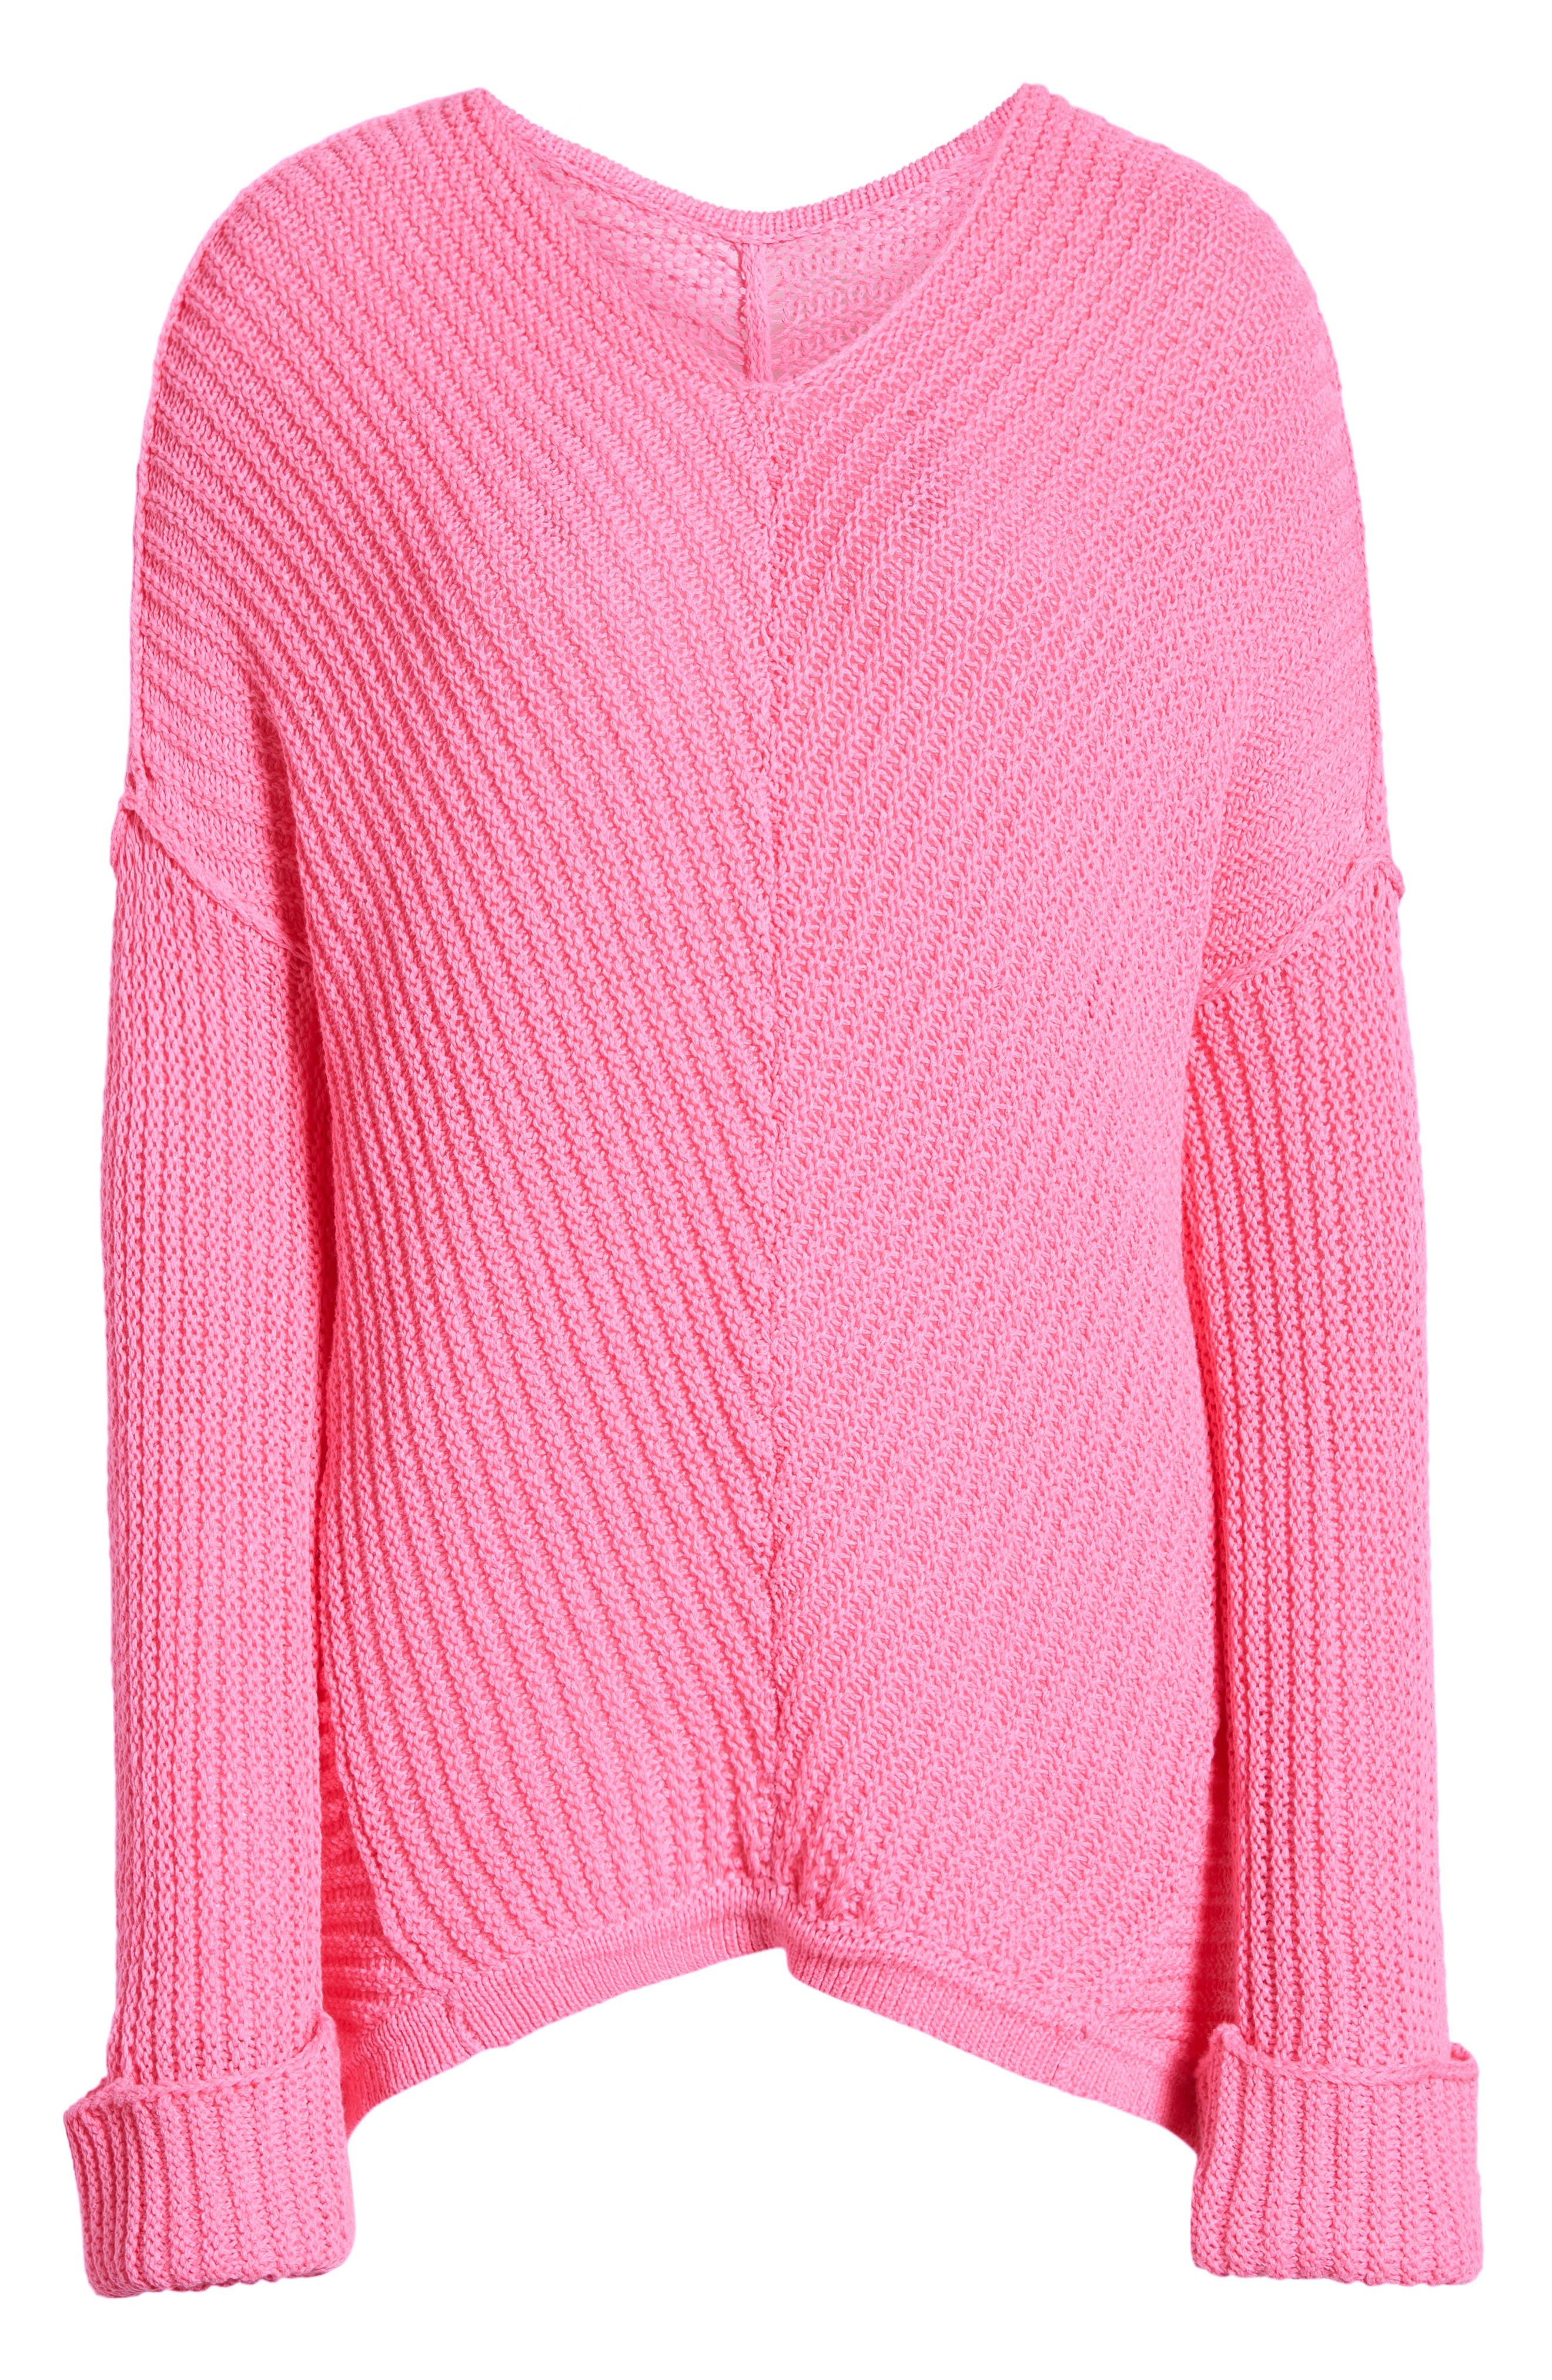 CASLON<SUP>®</SUP>,                             Cuffed Sleeve Sweater,                             Alternate thumbnail 6, color,                             PINK SACHET